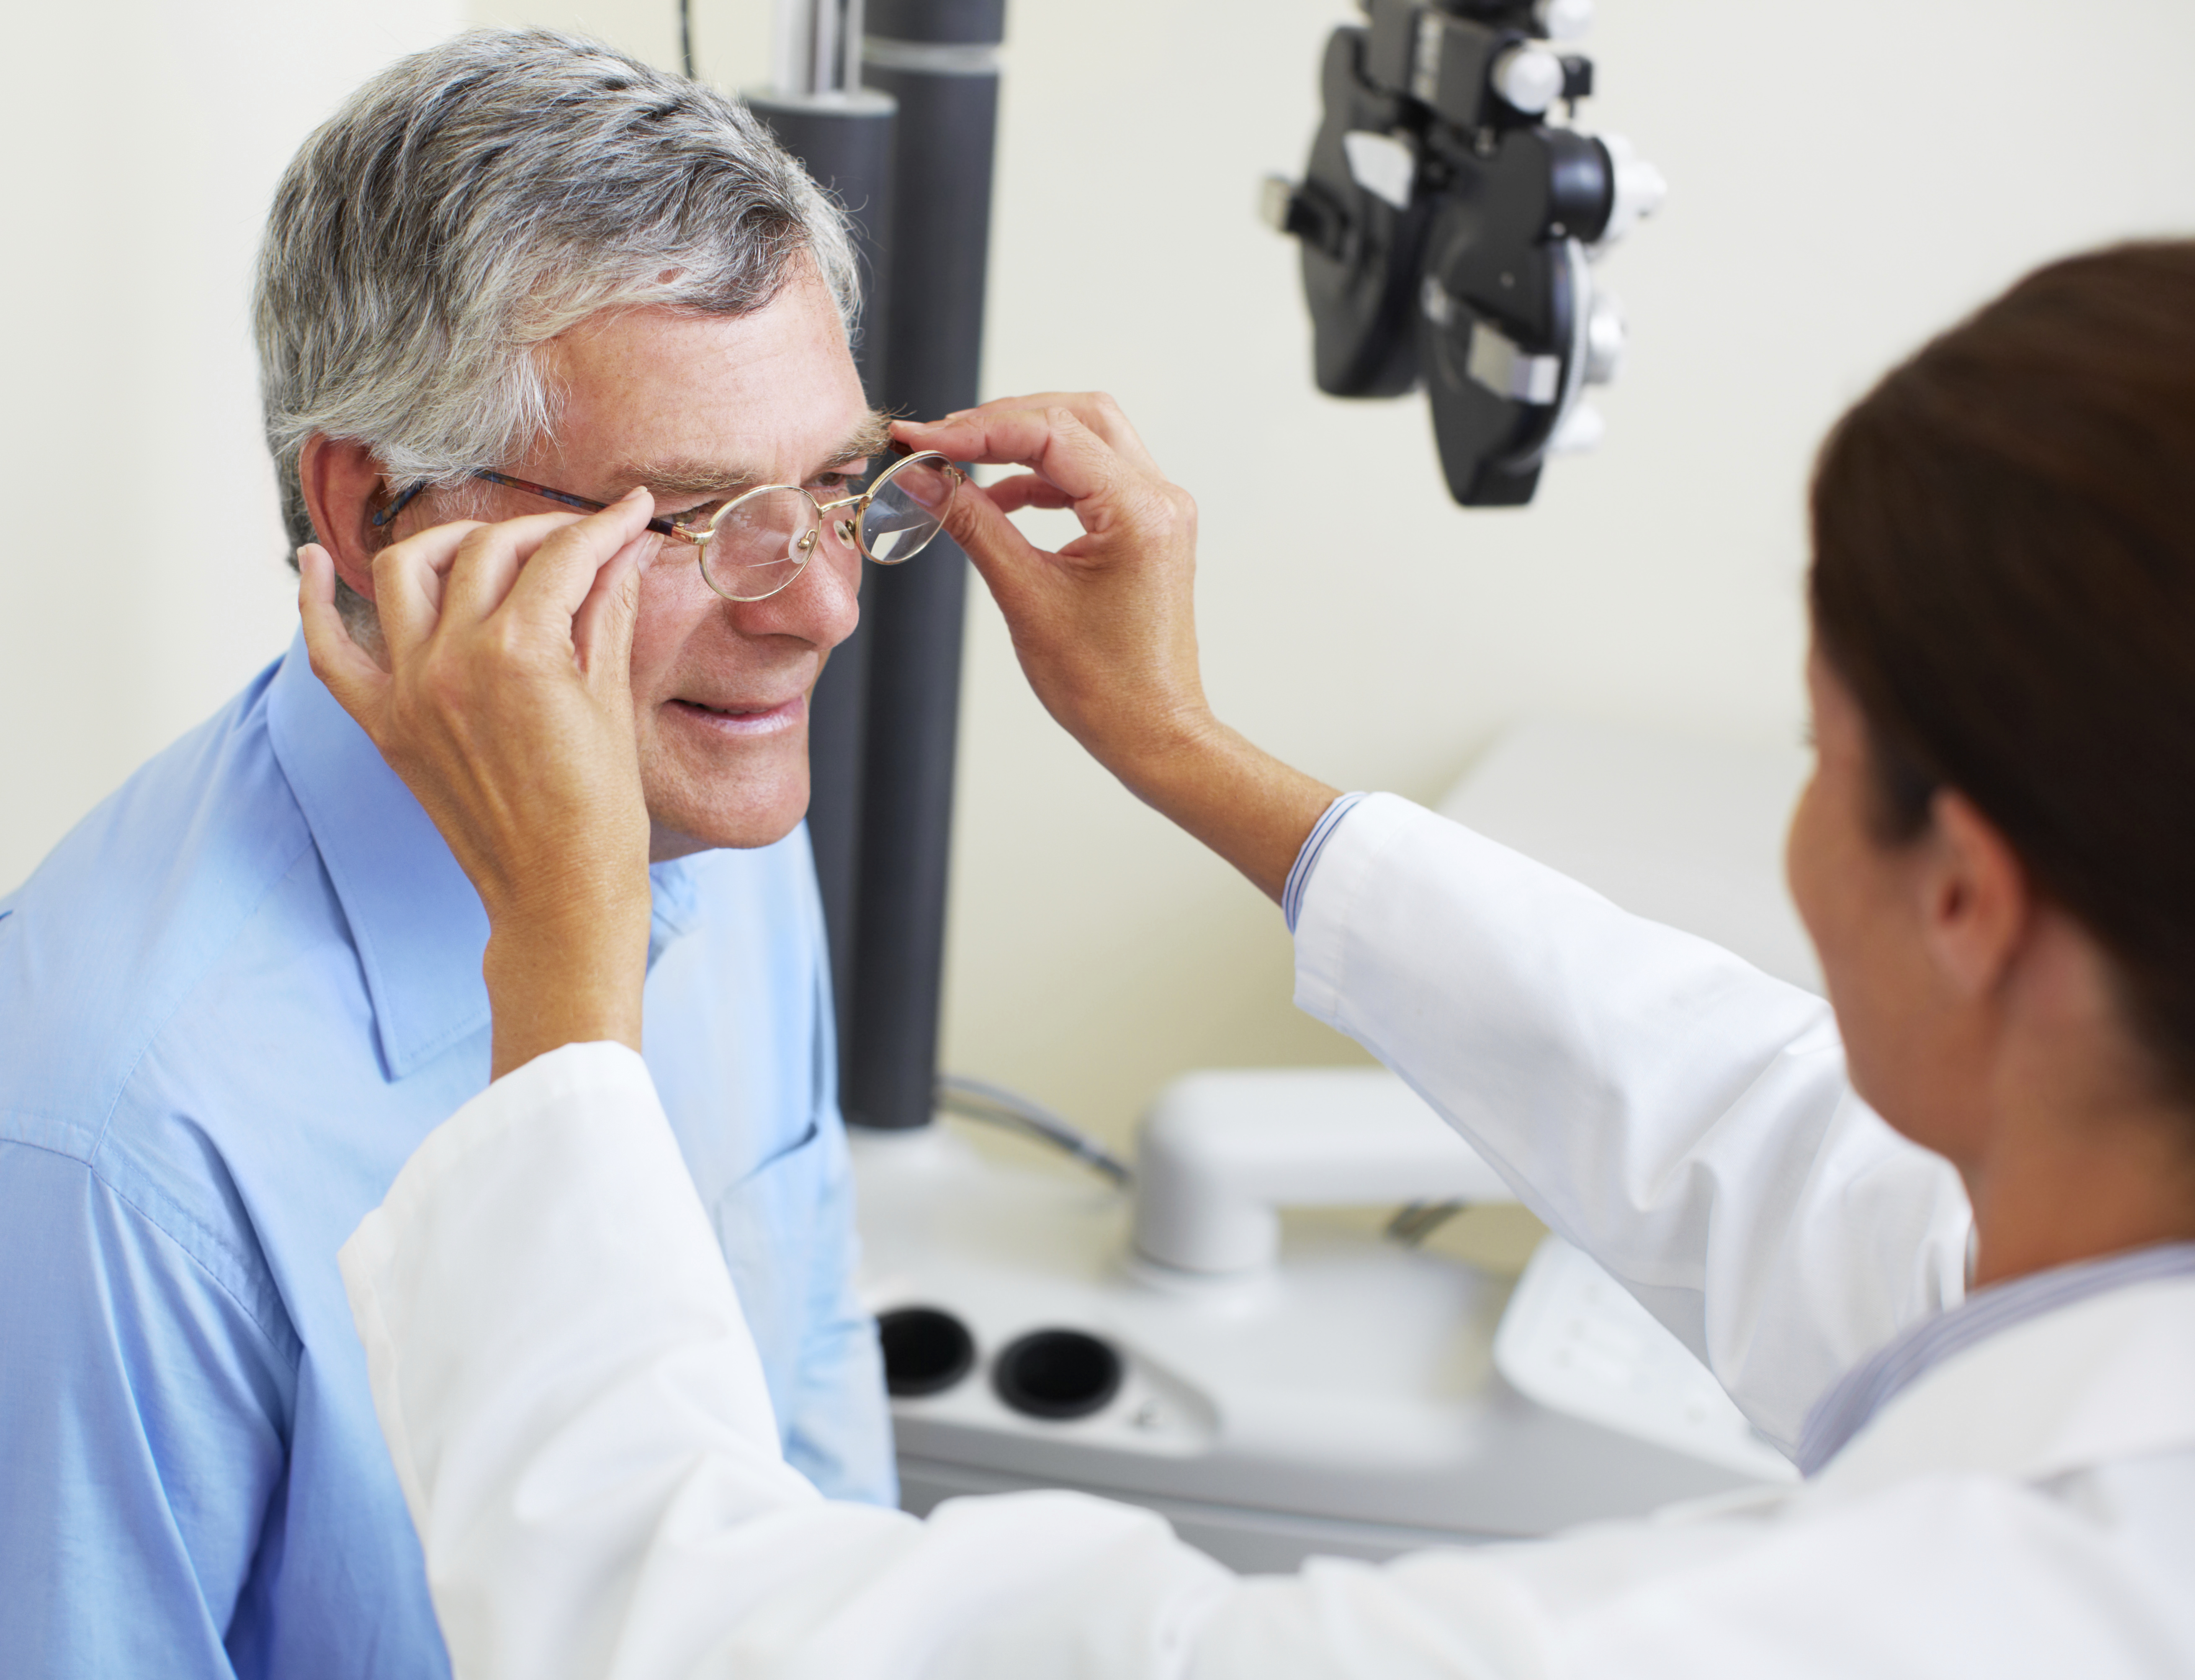 The Ophthalmic Assistant – Ophthalmologist Assistant